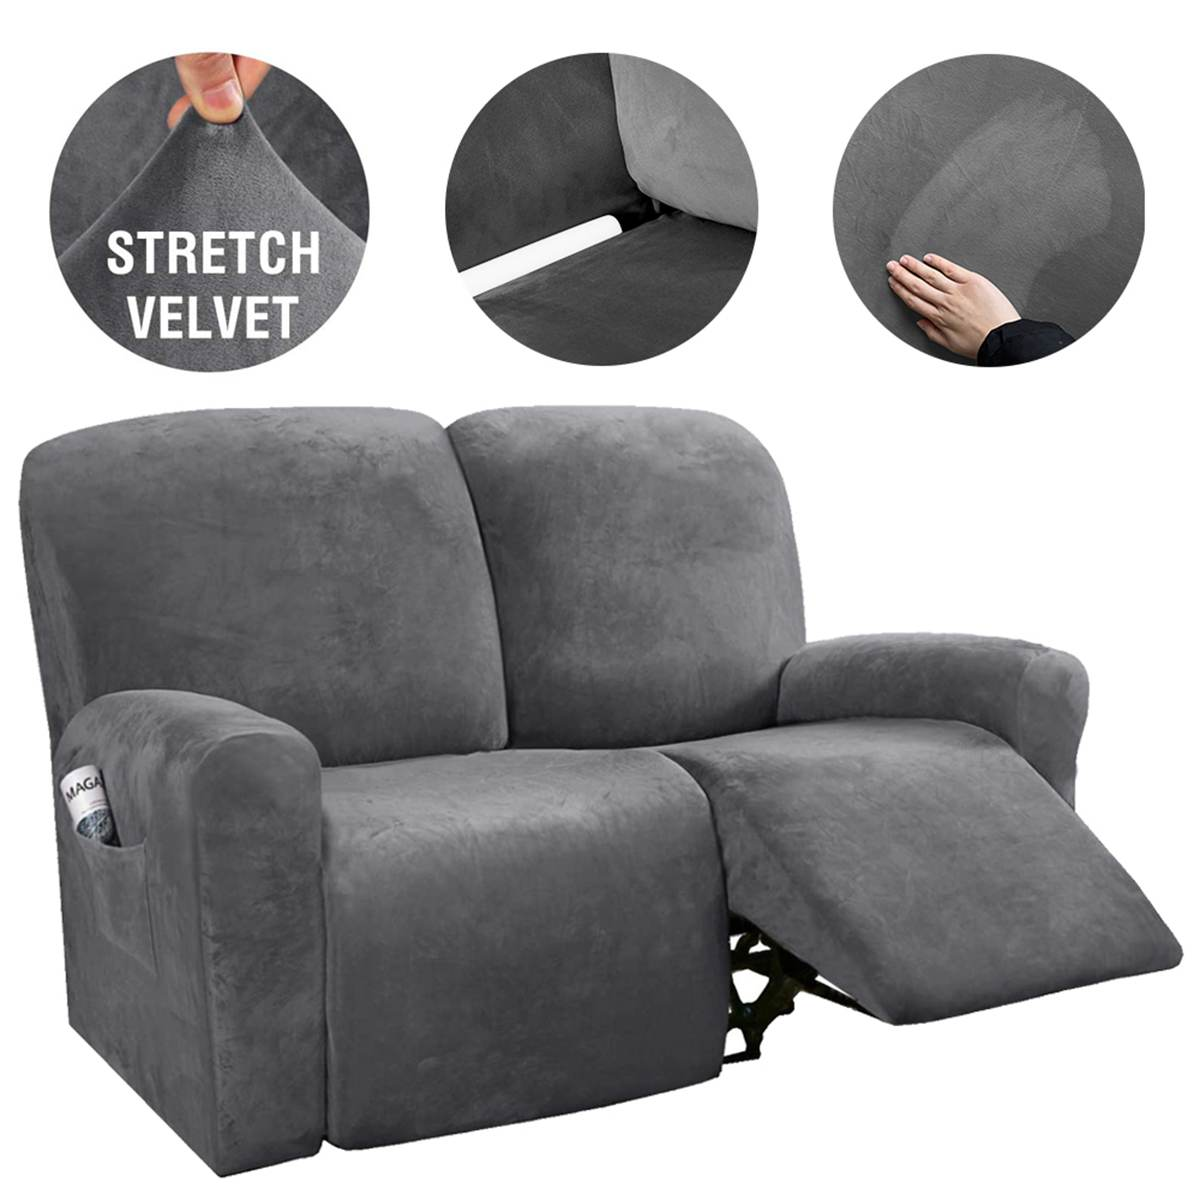 2 3 Seater Sofa Cover Stretch Velvet, Chair Covers For Sofa Recliners